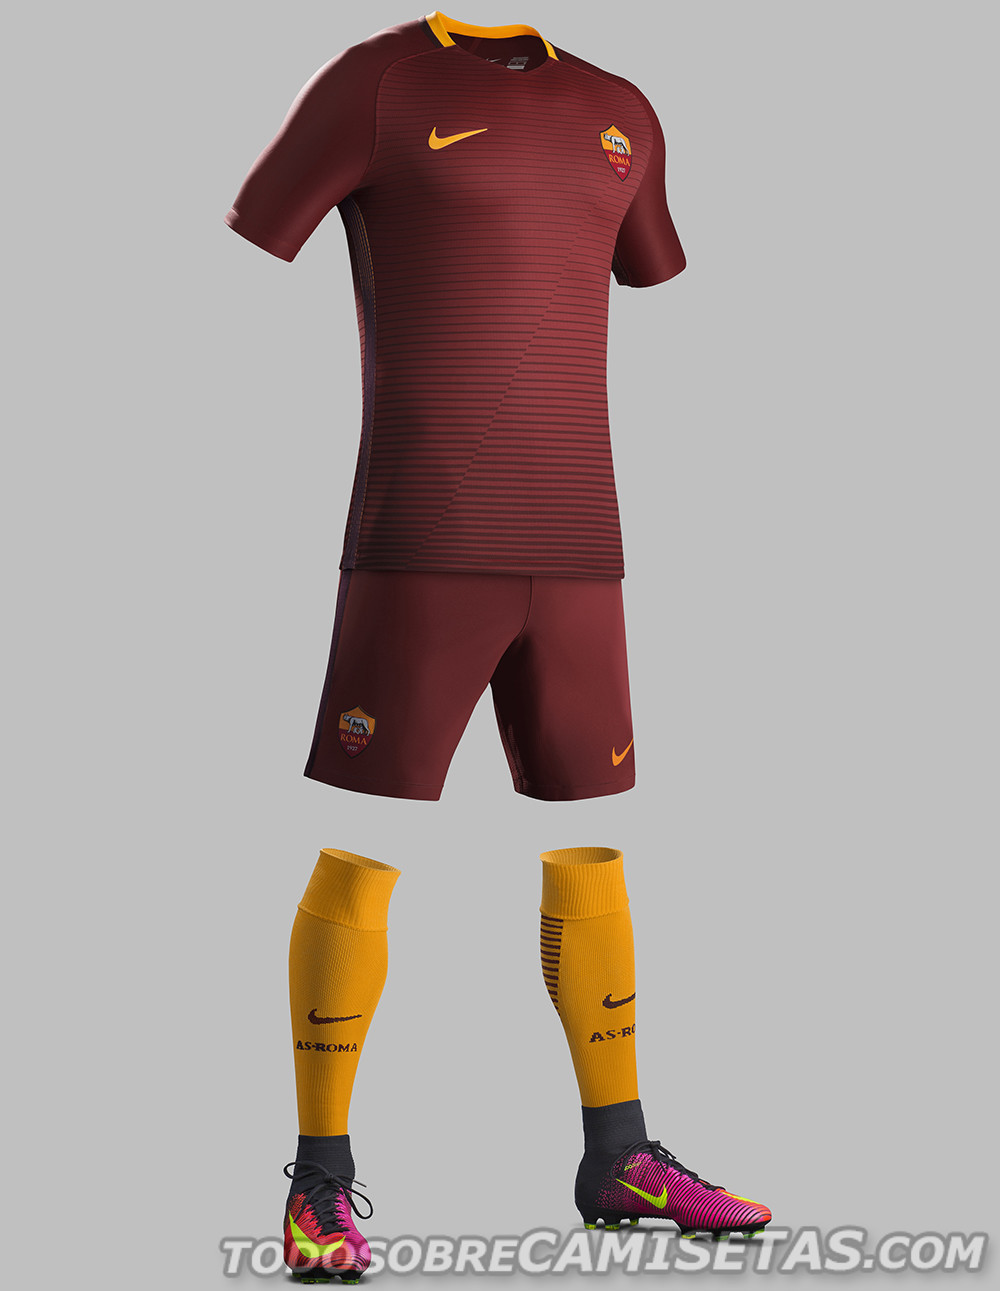 AS-Roma-2016-17-NIKE-new-home-kit-10.jpg